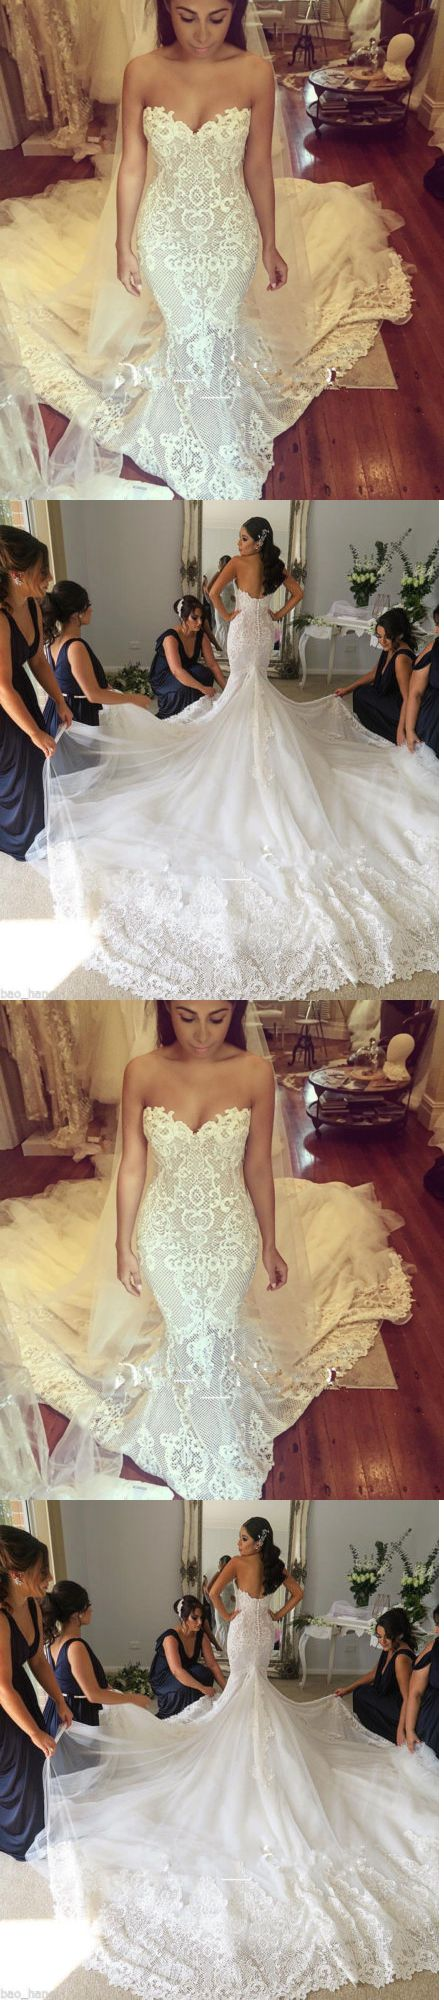 Wedding Dresses: New Mermaid Lace Wedding Dress Long Bridal Gown Custom 4 6 8 10 12 14 16 18+++++ -> BUY IT NOW ONLY: $126.8 on eBay!